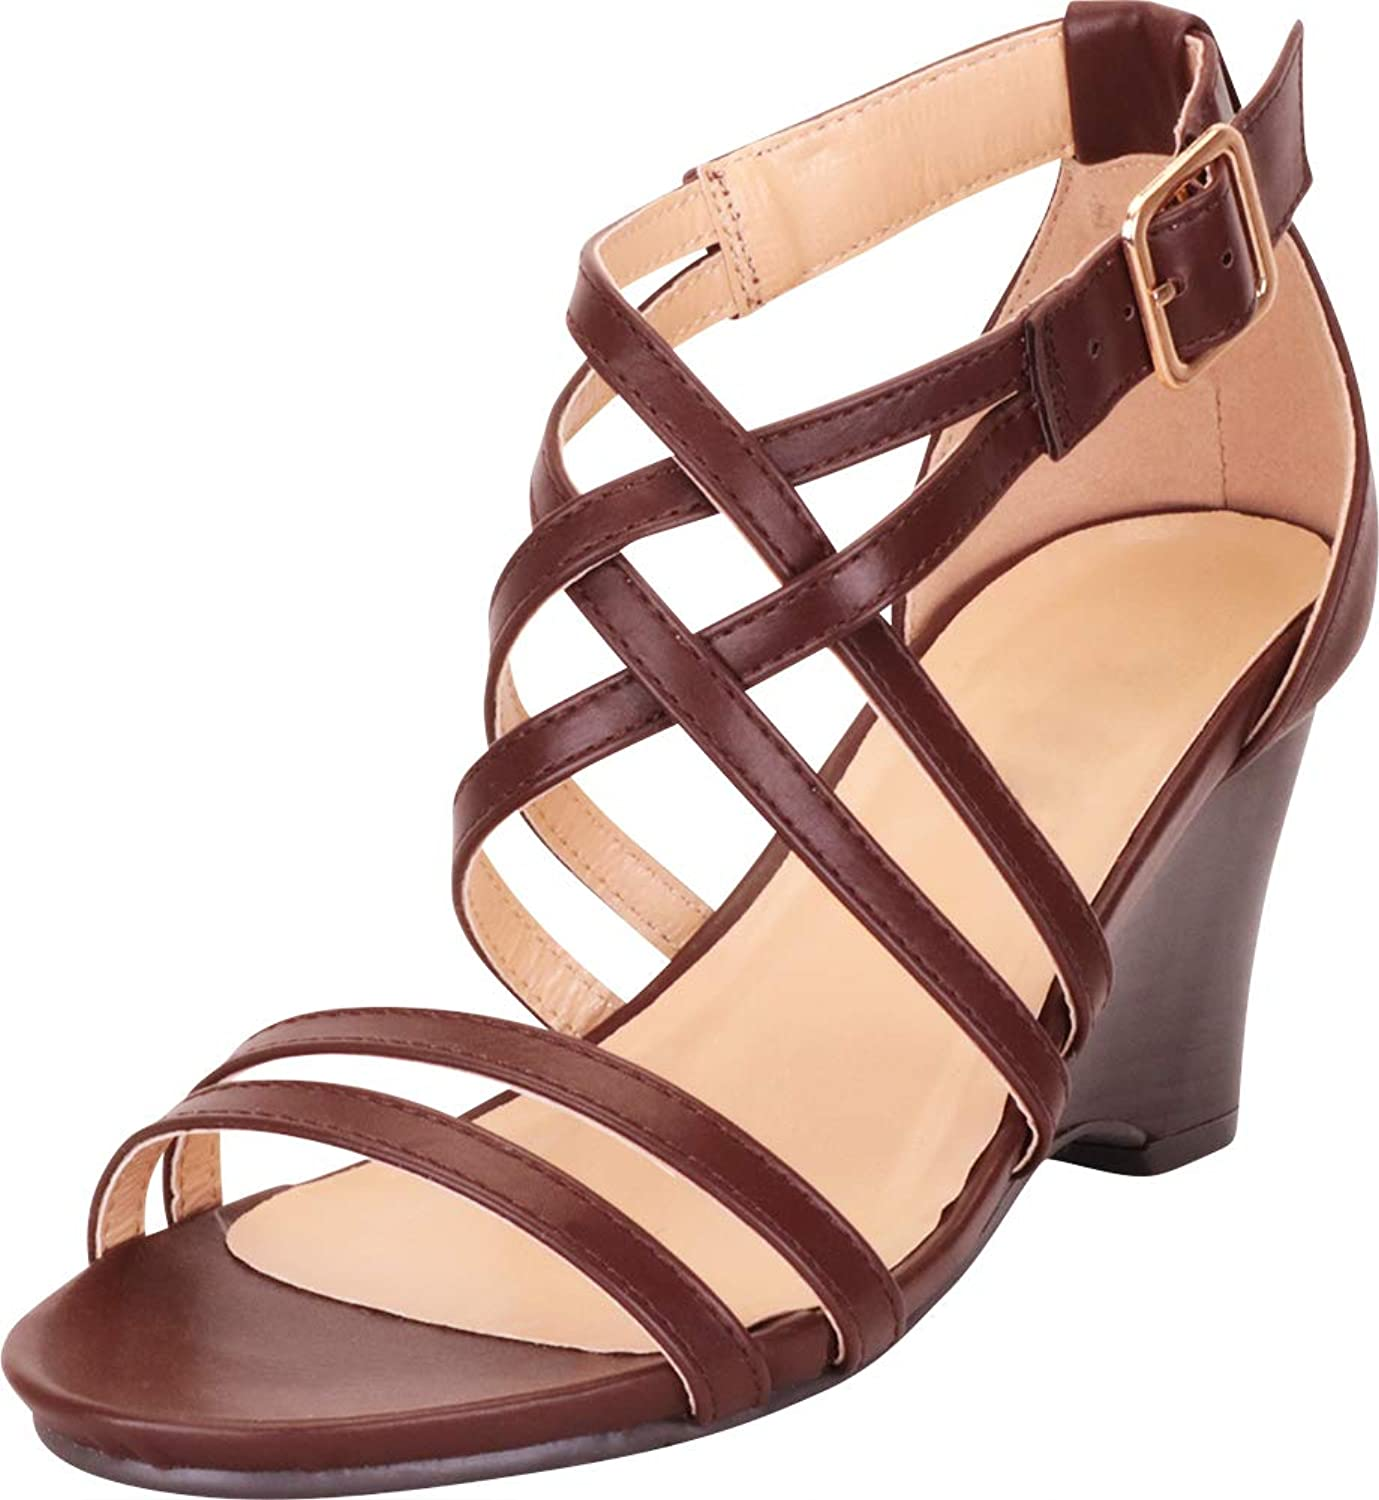 Cambridge Select Women's Open Toe Strappy Crisscross Lattice Wedge Sandal